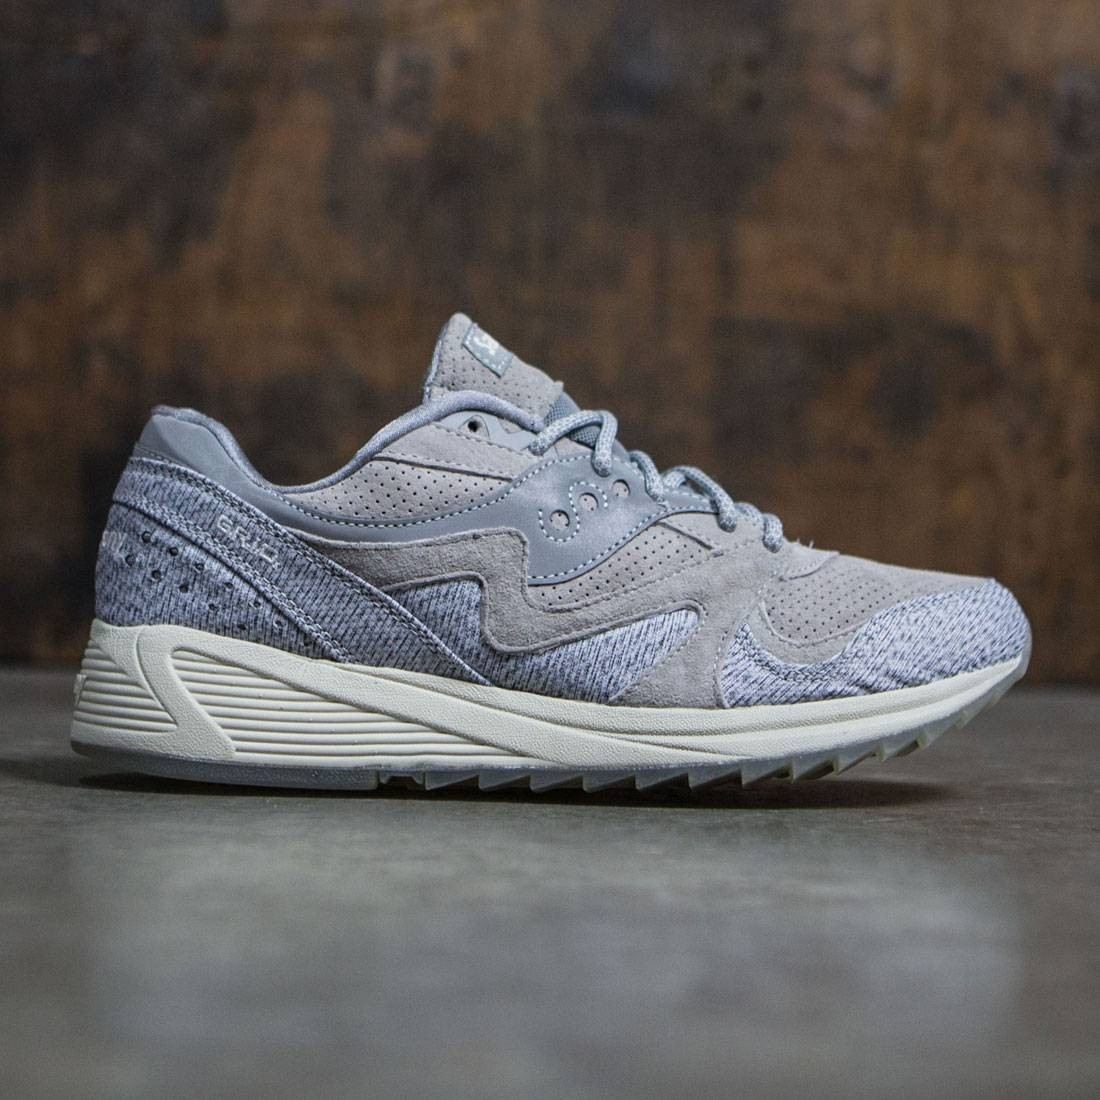 5e2819d0fe92 Buy saucony grid 8000 mens grey   Up to OFF75% Discounted